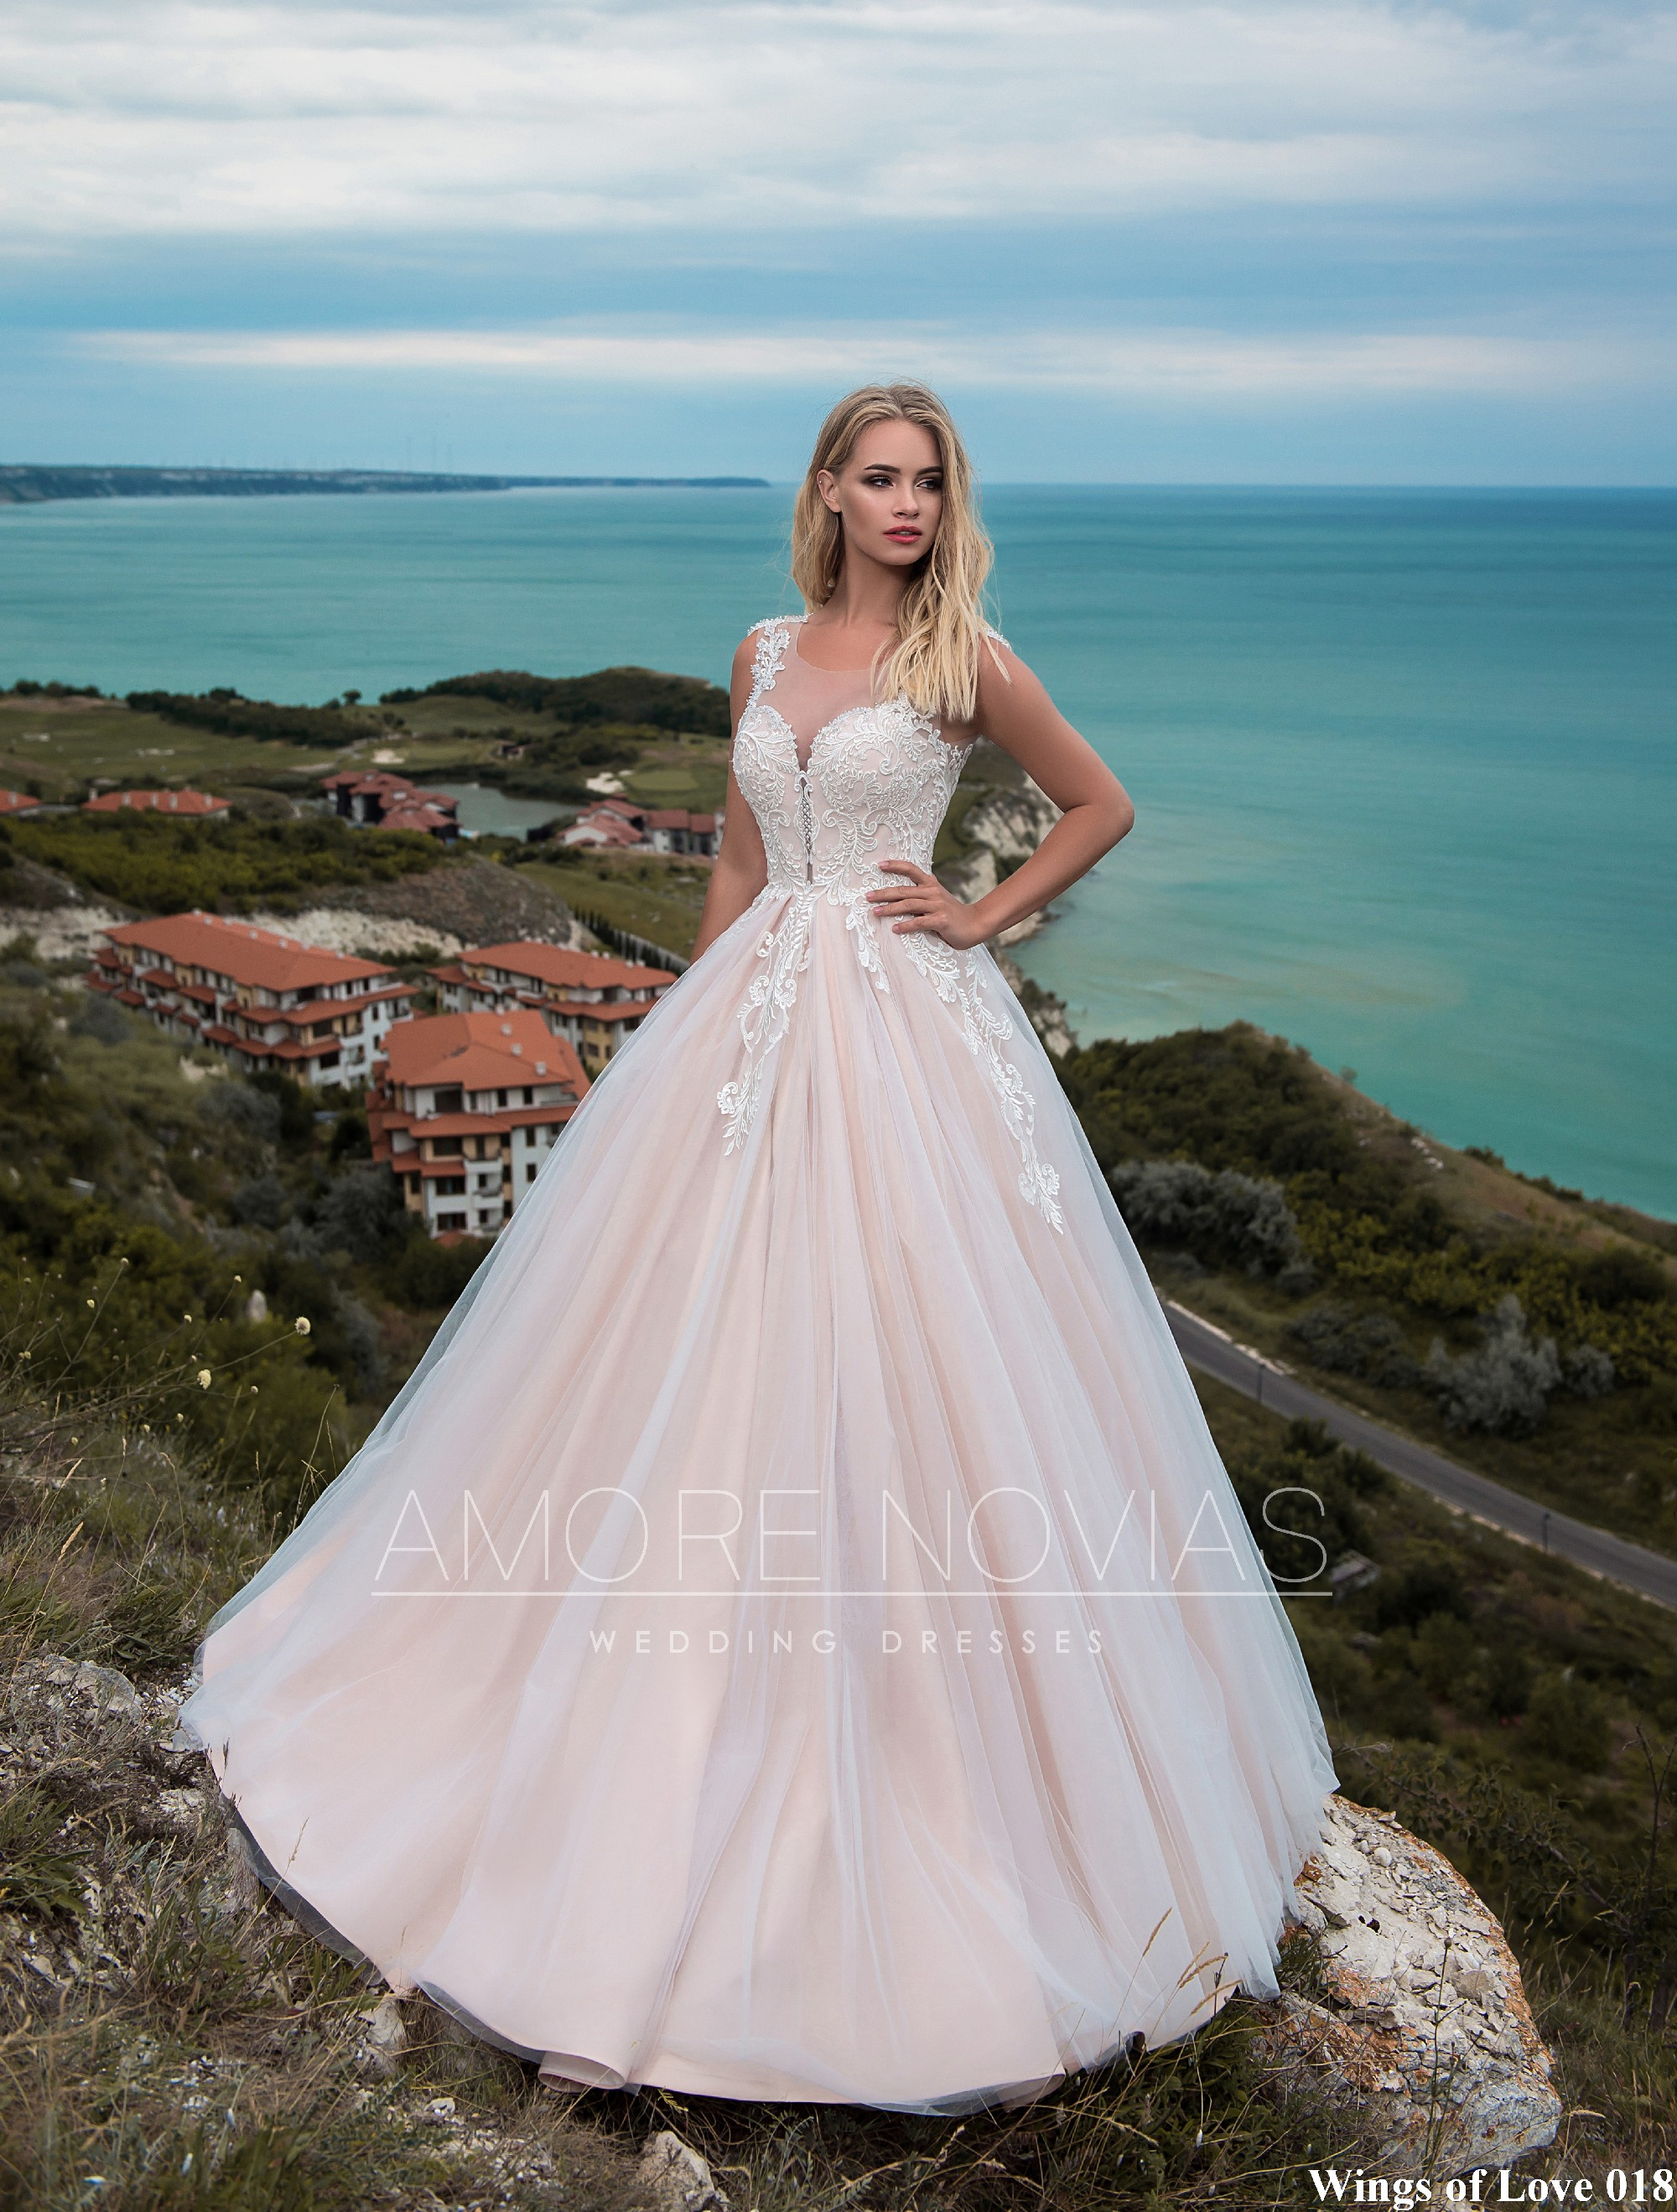 http://amore-novias.com/images/stories/virtuemart/product/lk-018-------(1).jpg